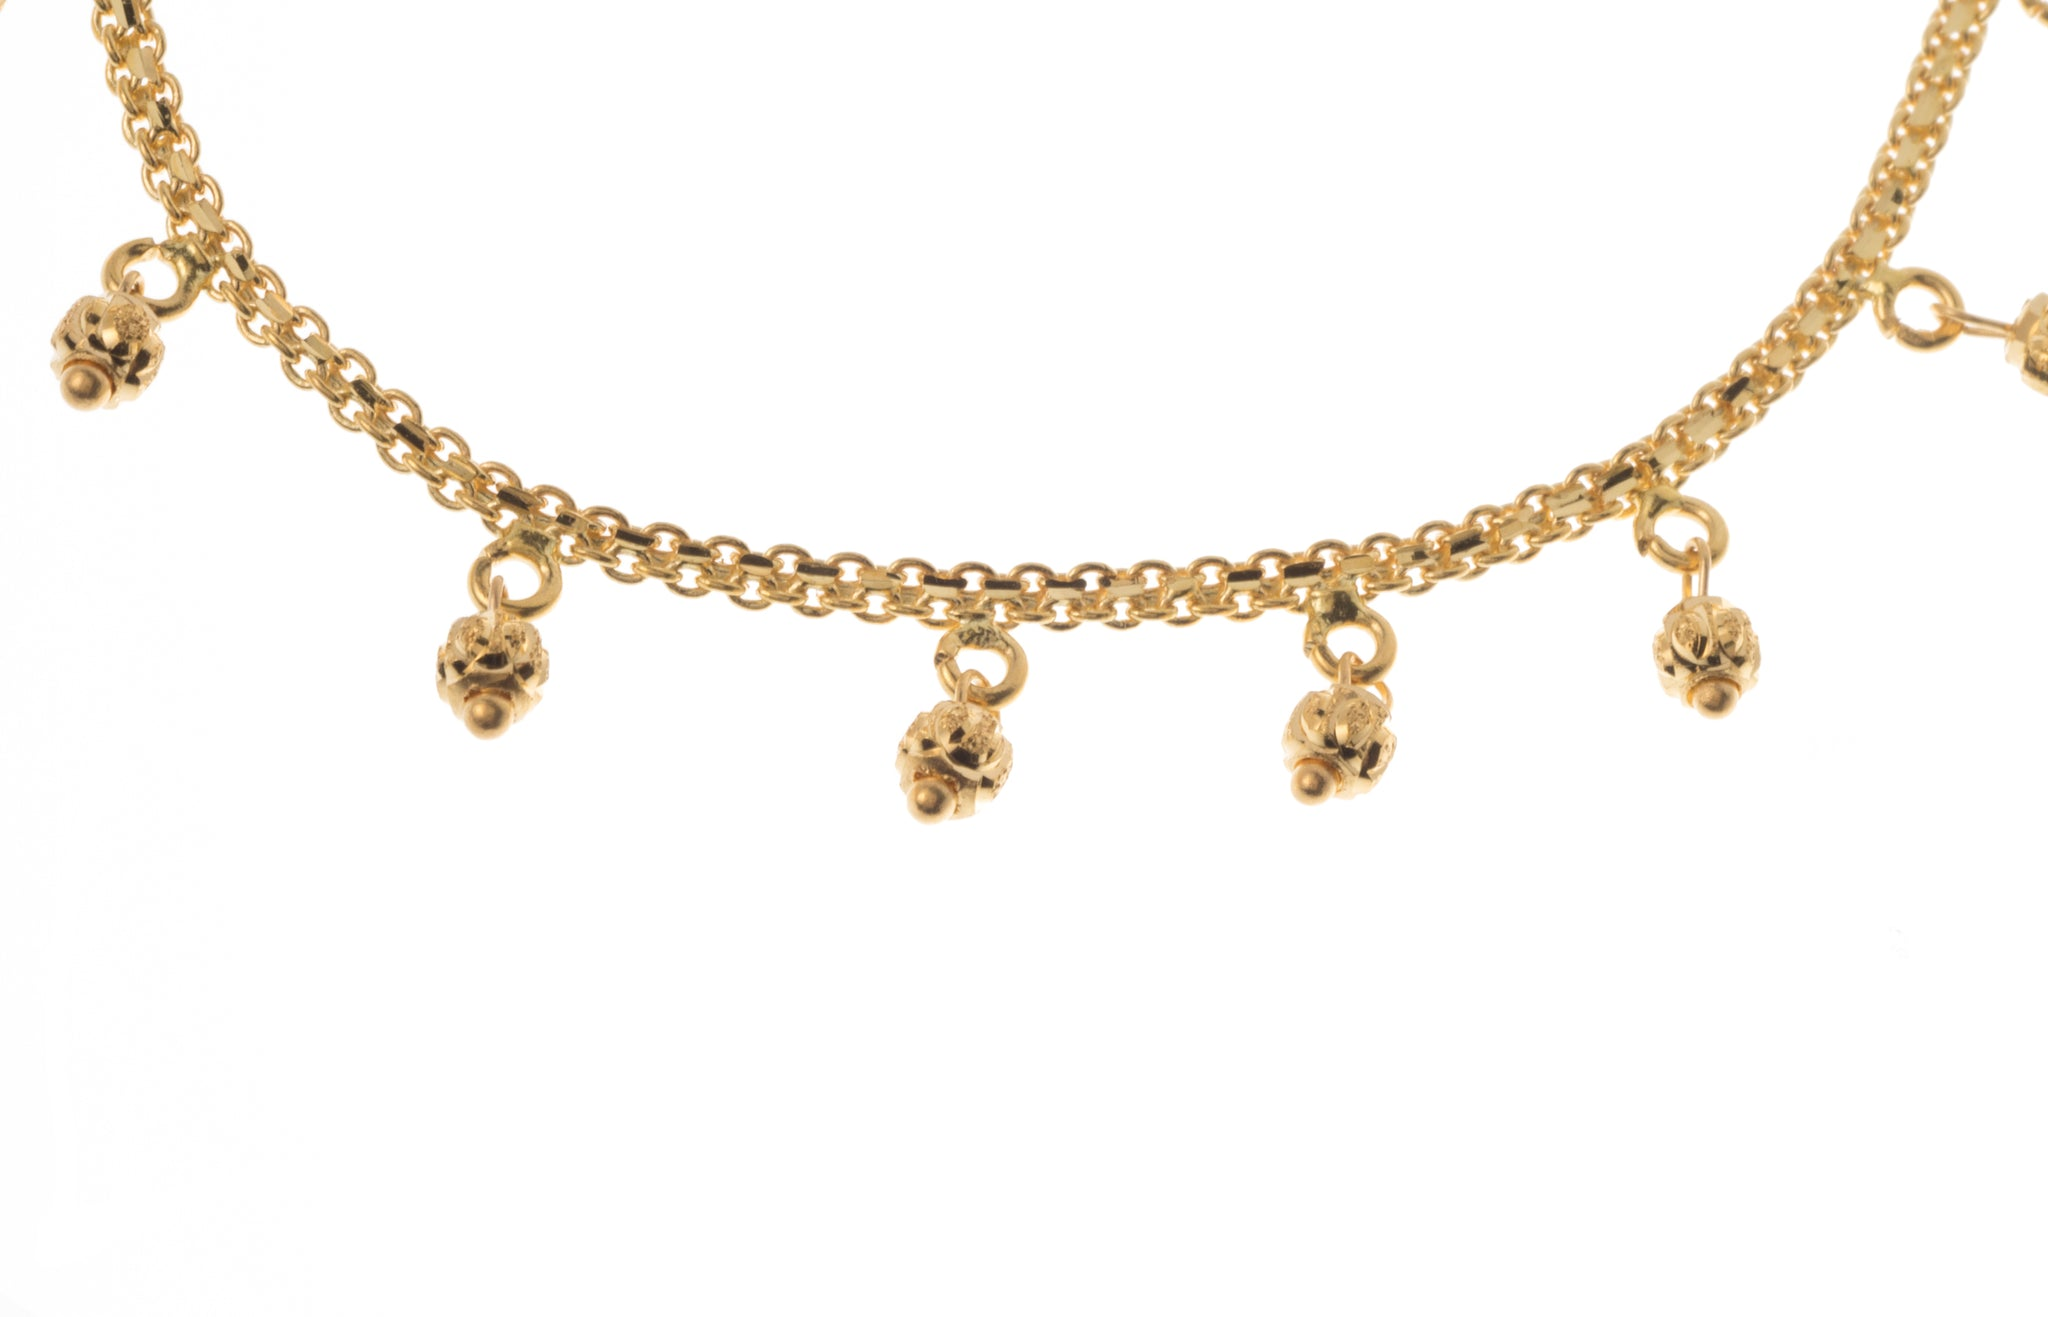 22ct Gold Bracelet with Diamond Cut Bead Drops (5.1g) LBR-7309